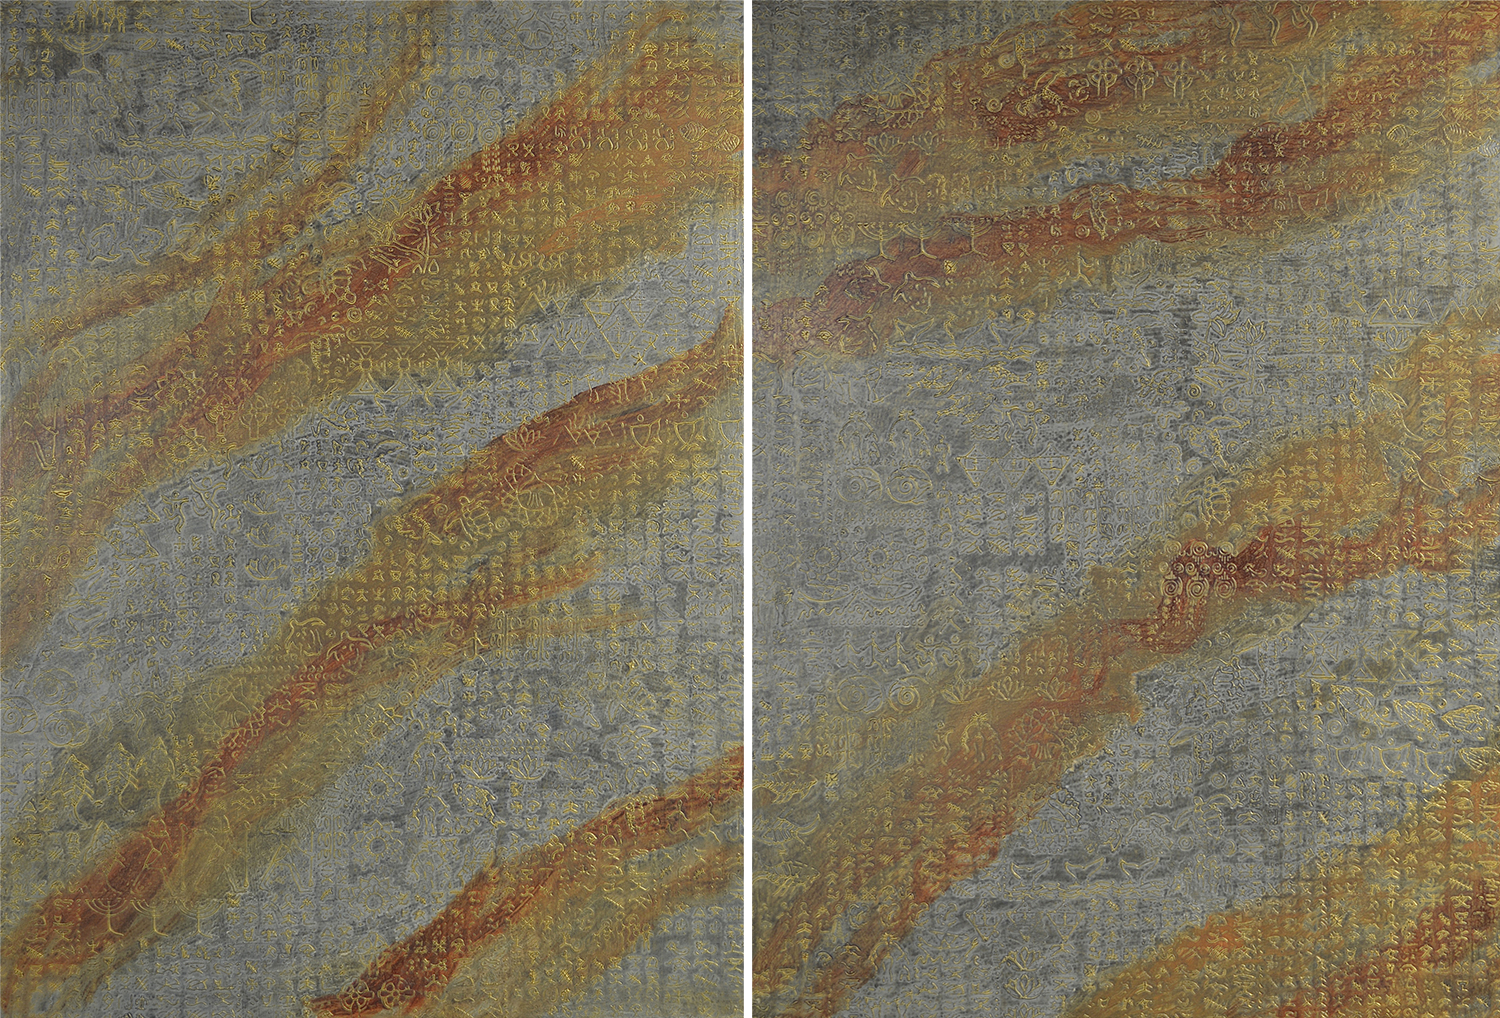 """Mana (Hawaiian - Divine Power) 1 & 2 @ 48"""" W x 65"""" H x 2"""" D  A custom commission, location on the installation images page."""